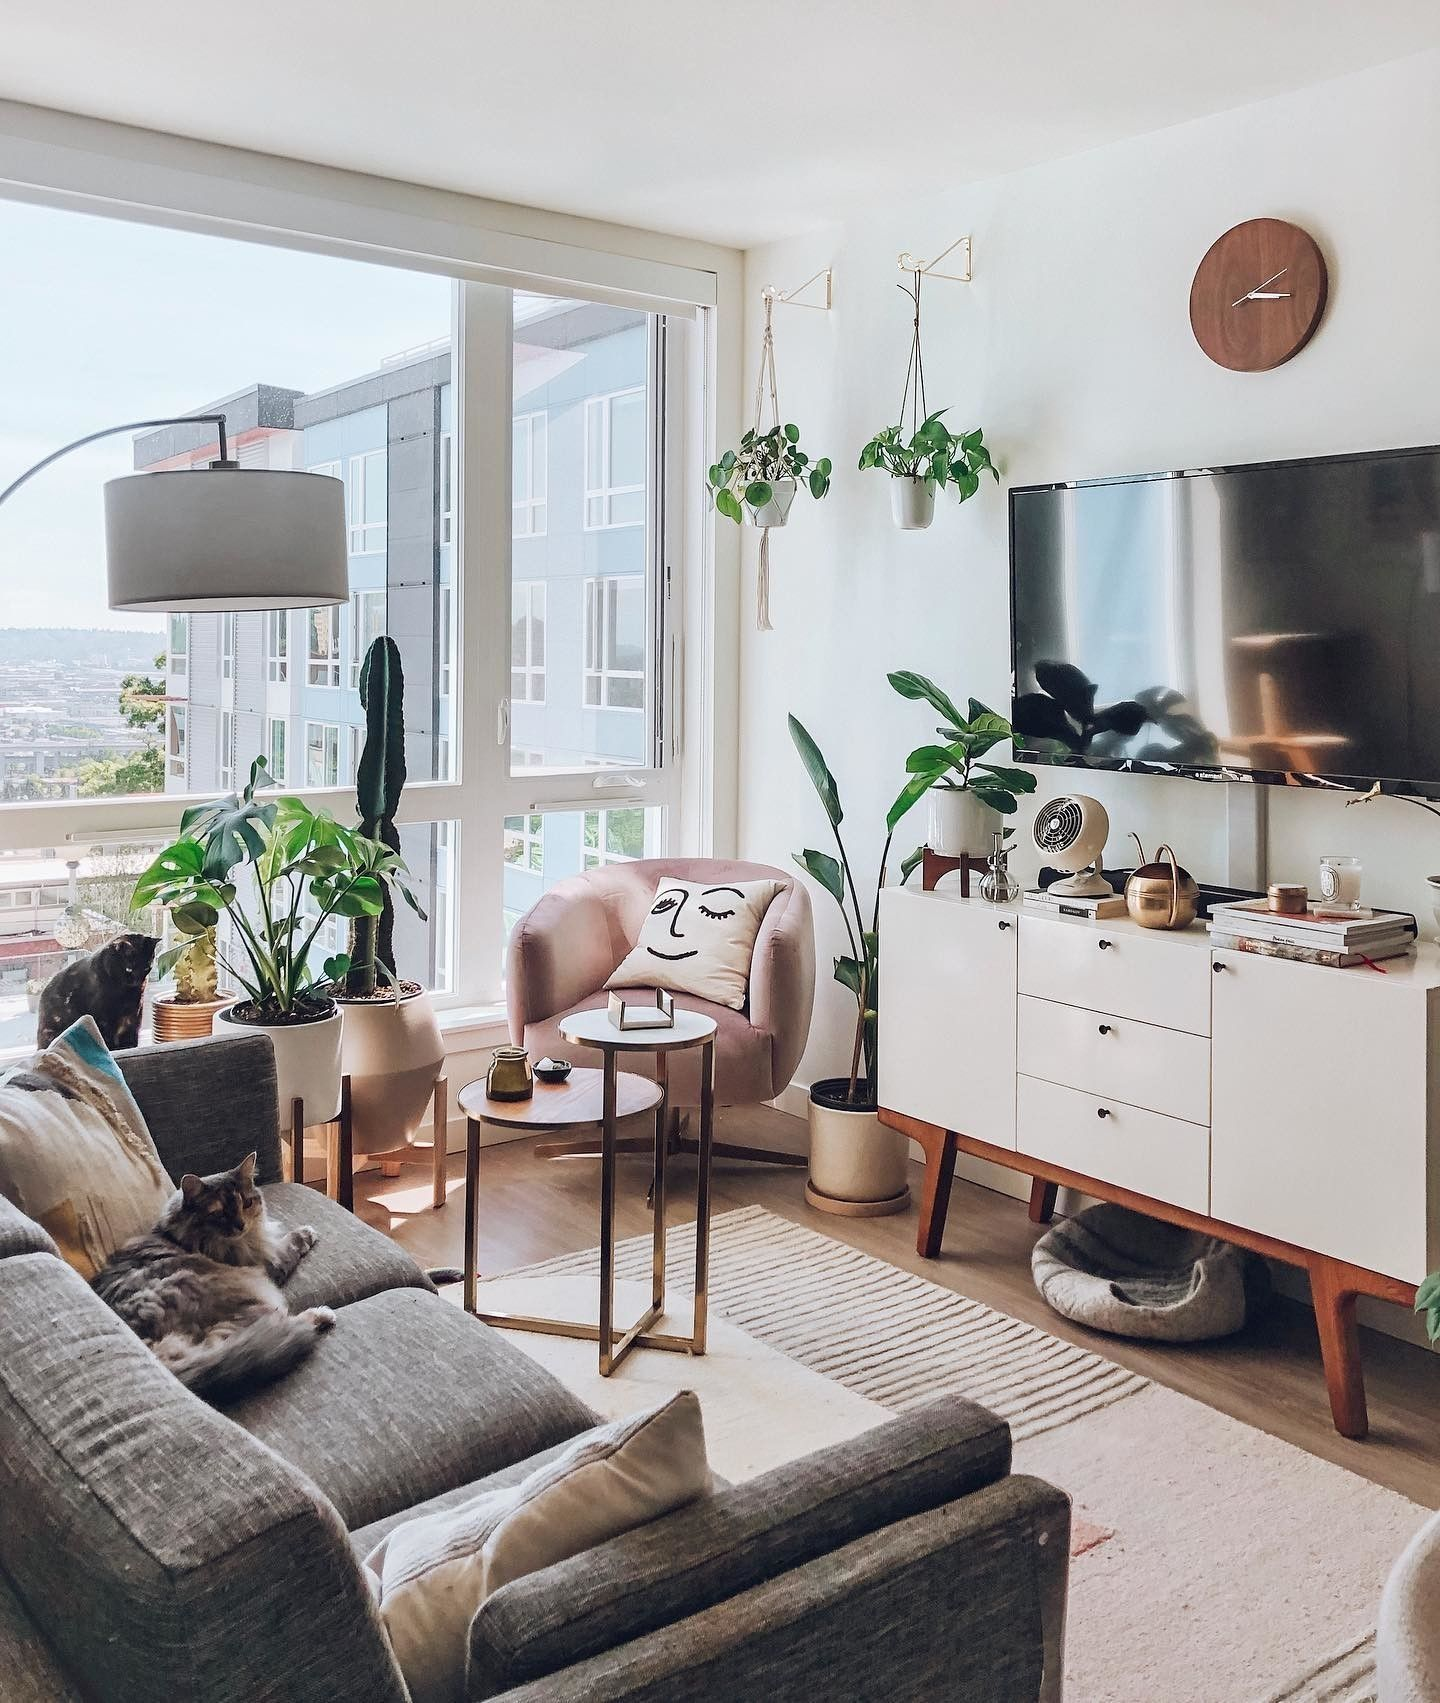 20 Best Apartment Decorating Ideas On A Budget To Try Asap Living Room Decor Apartment Small Apartment Living Small Apartment Living Room